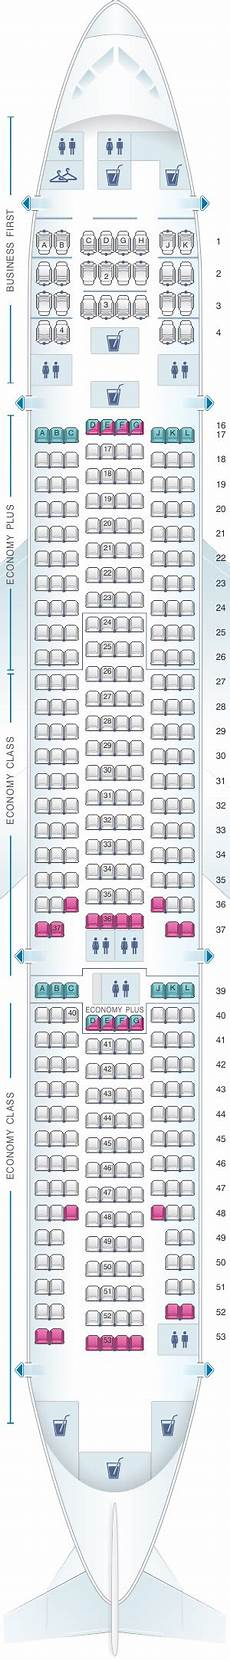 United Airlines Seating Chart 777 International Boeing 777 200 Seat Map United Airlines Bruin Blog